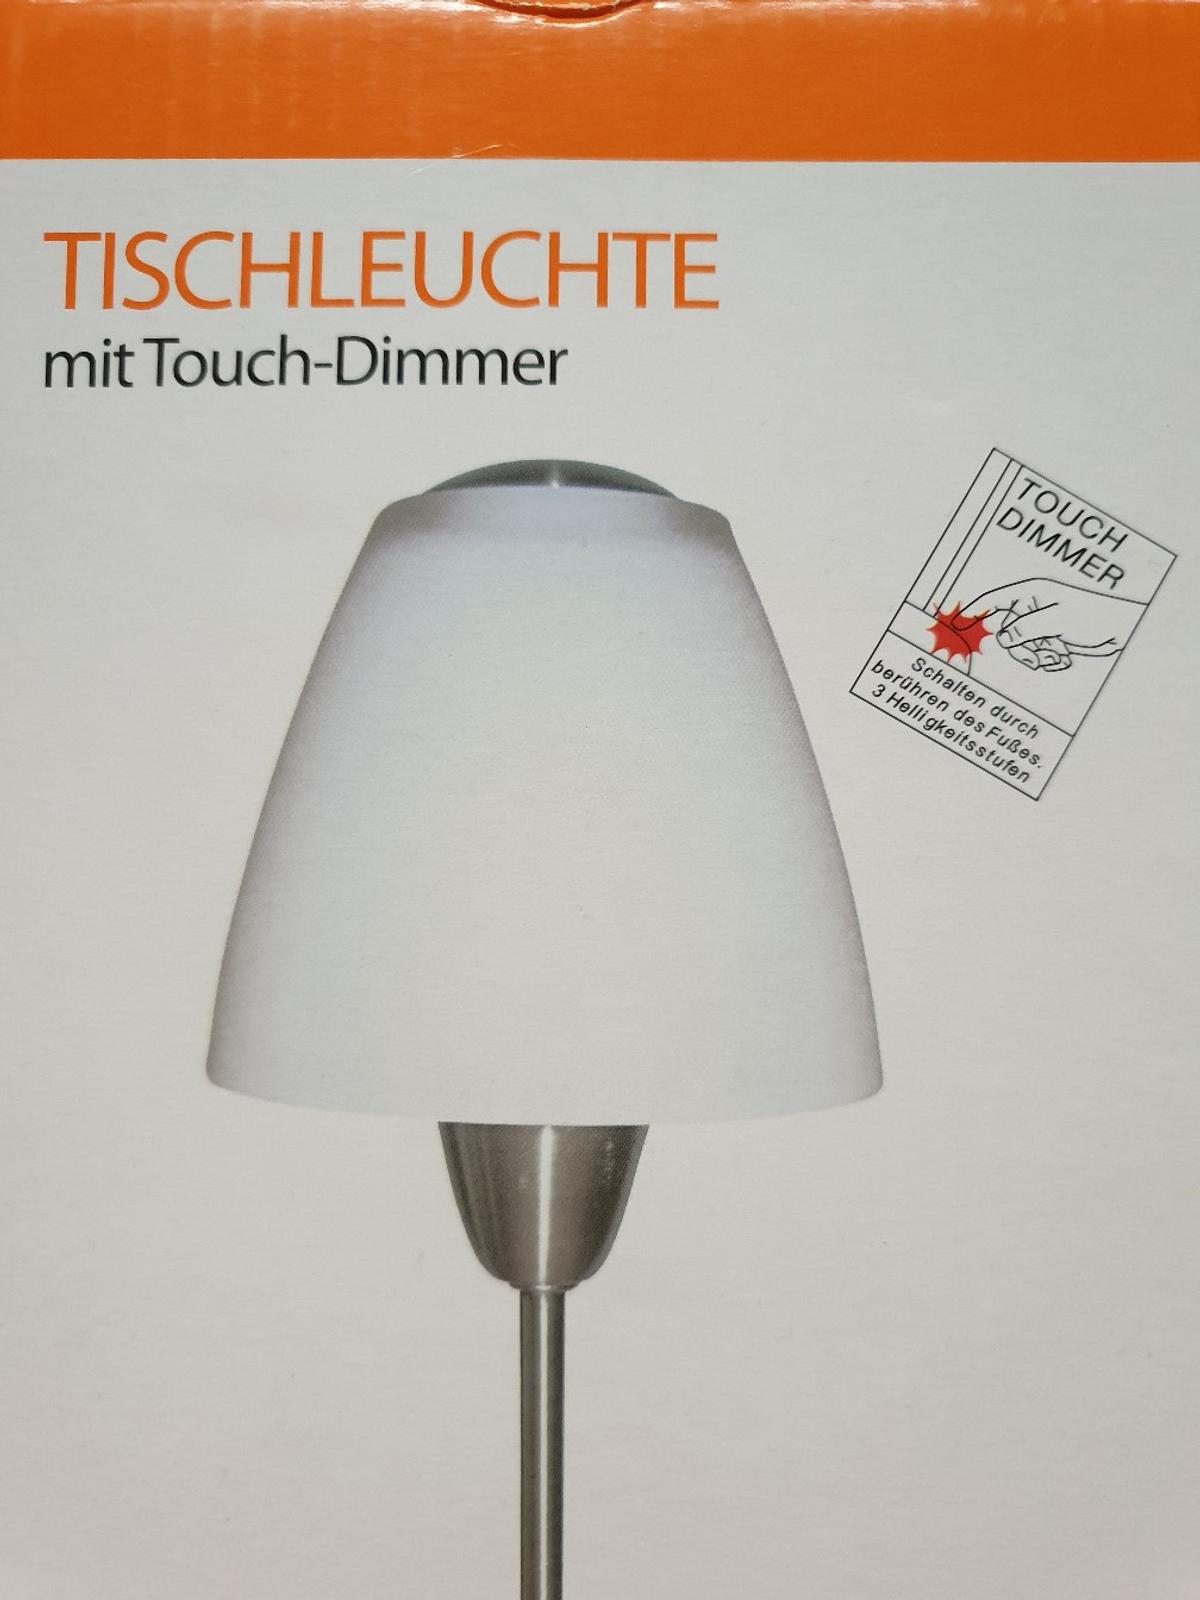 Tischlampe Mit Touch Dimmer In 76344 Eggenstein Leopoldshafen For 8 00 For Sale Shpock